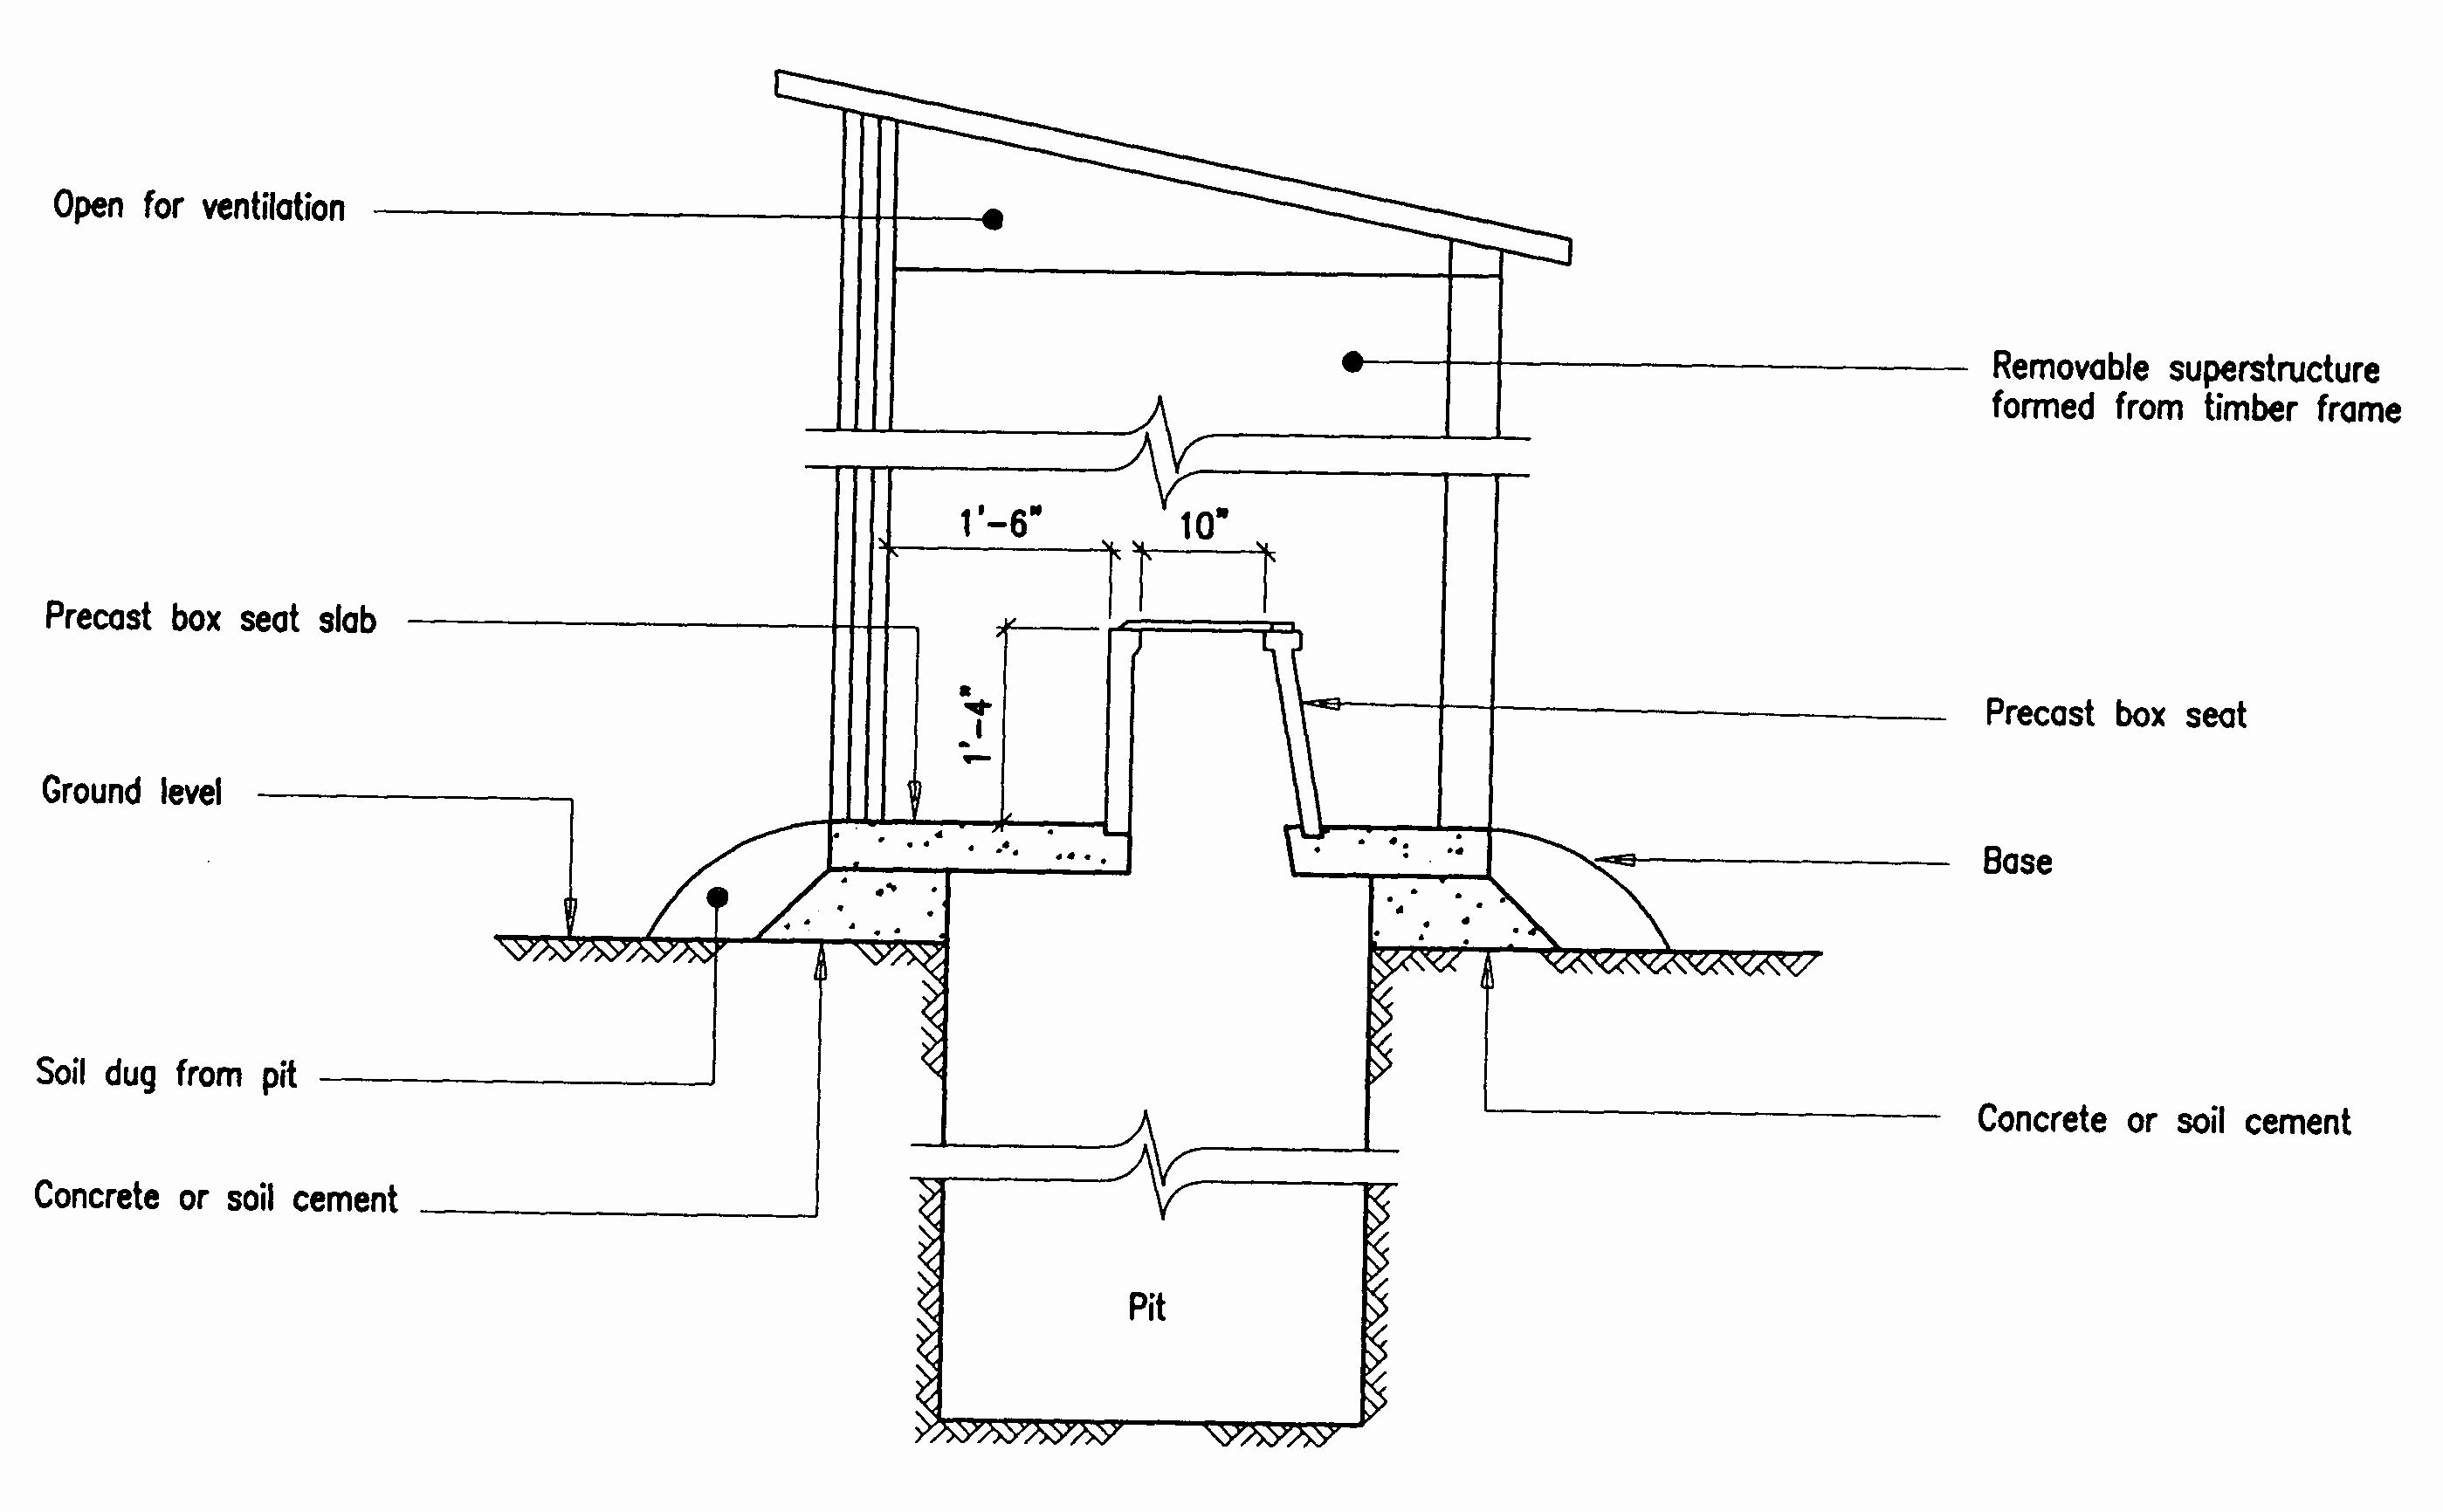 Technical Drawing Book Pdf Free Download Elegant Building Guidelines Drawings Section F Plumbing In 2020 Drawing Book Pdf Plumbing Technical Drawing